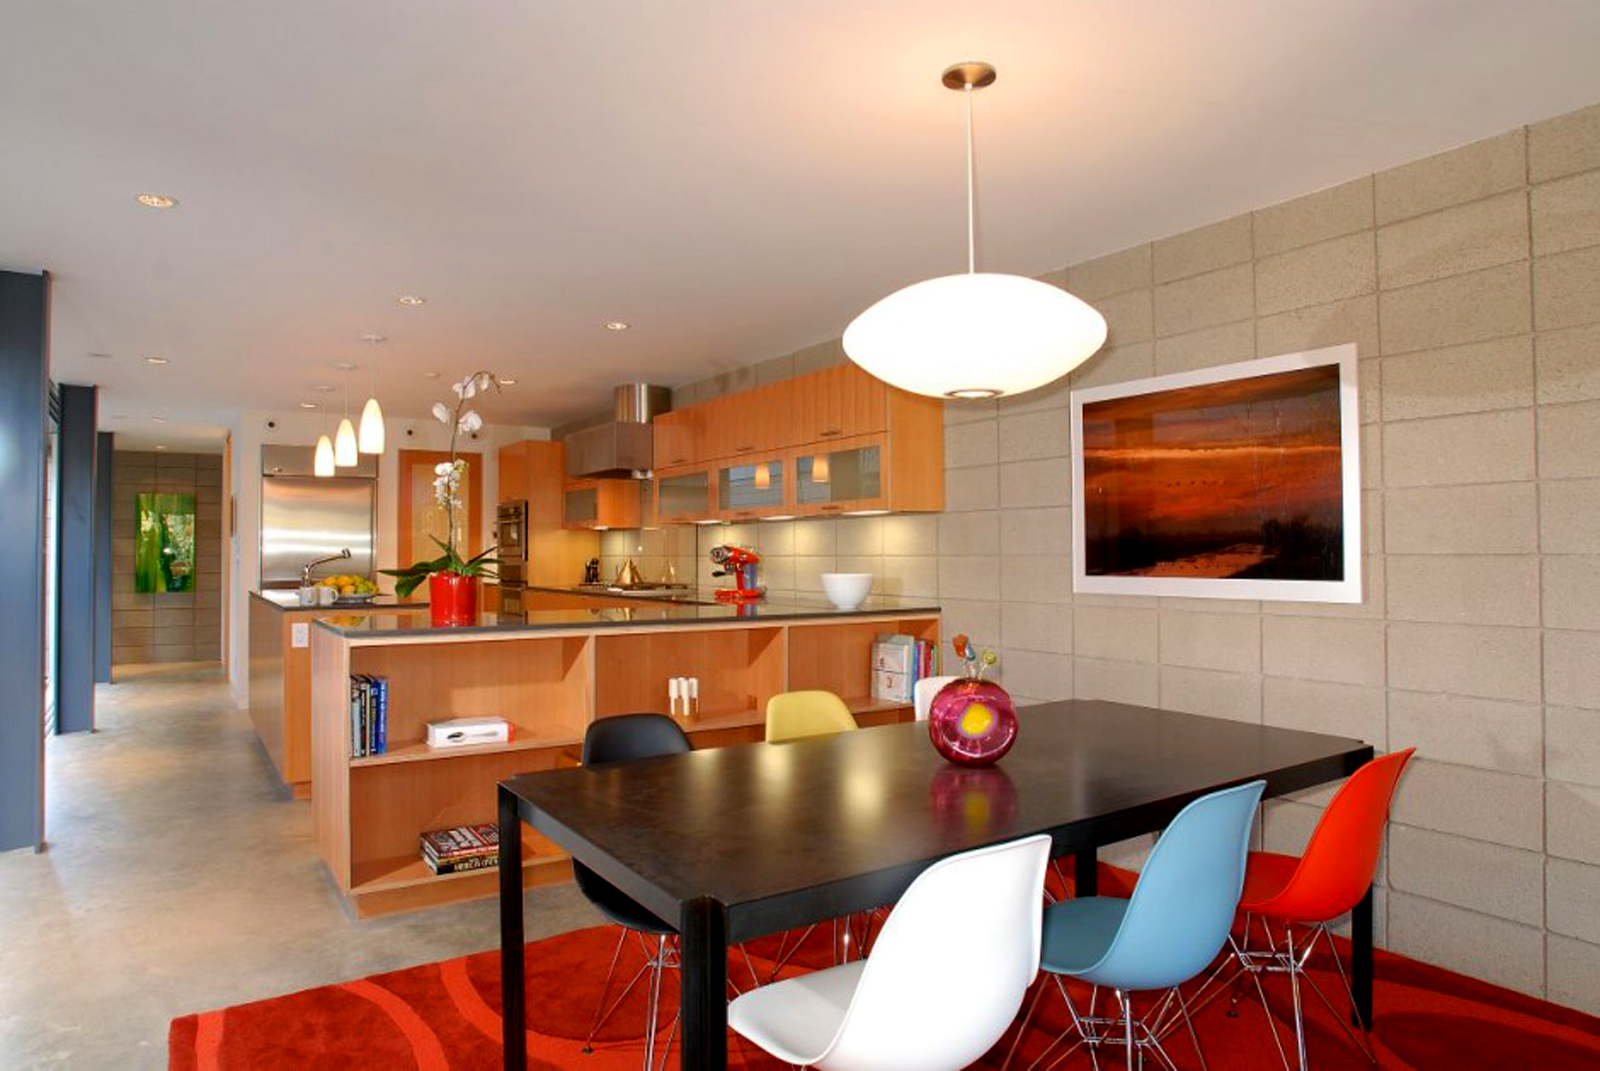 Featured Image of Minimalist Design Of Contemporary American Kitchen